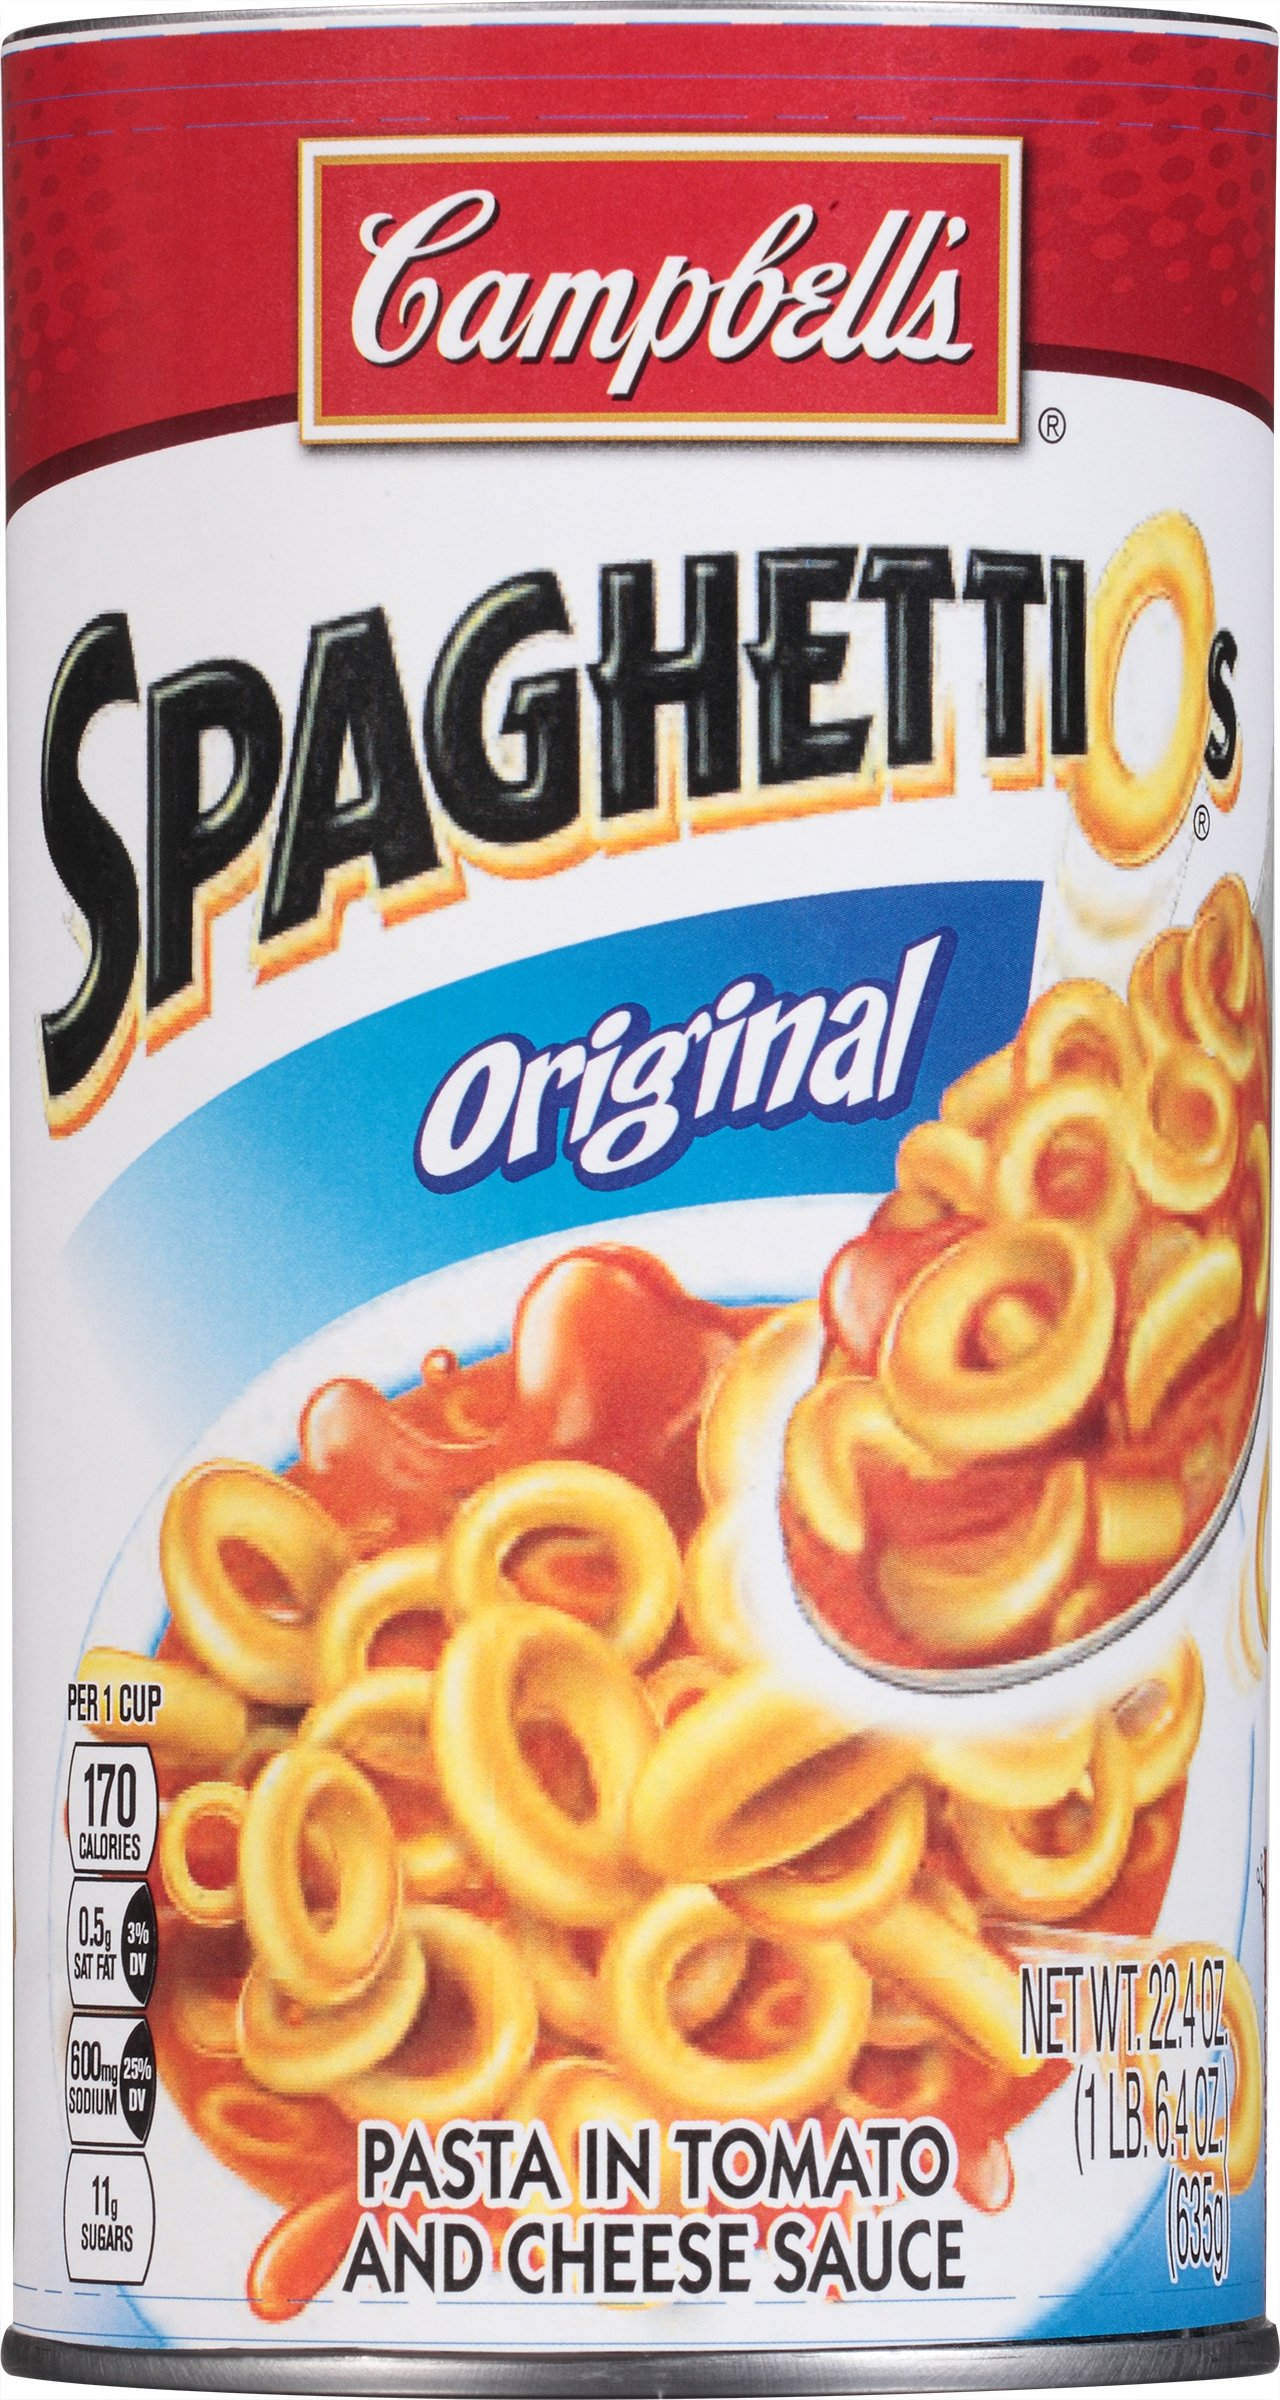 SpaghettiOs Original, 22.4 oz. (Pack of 12)